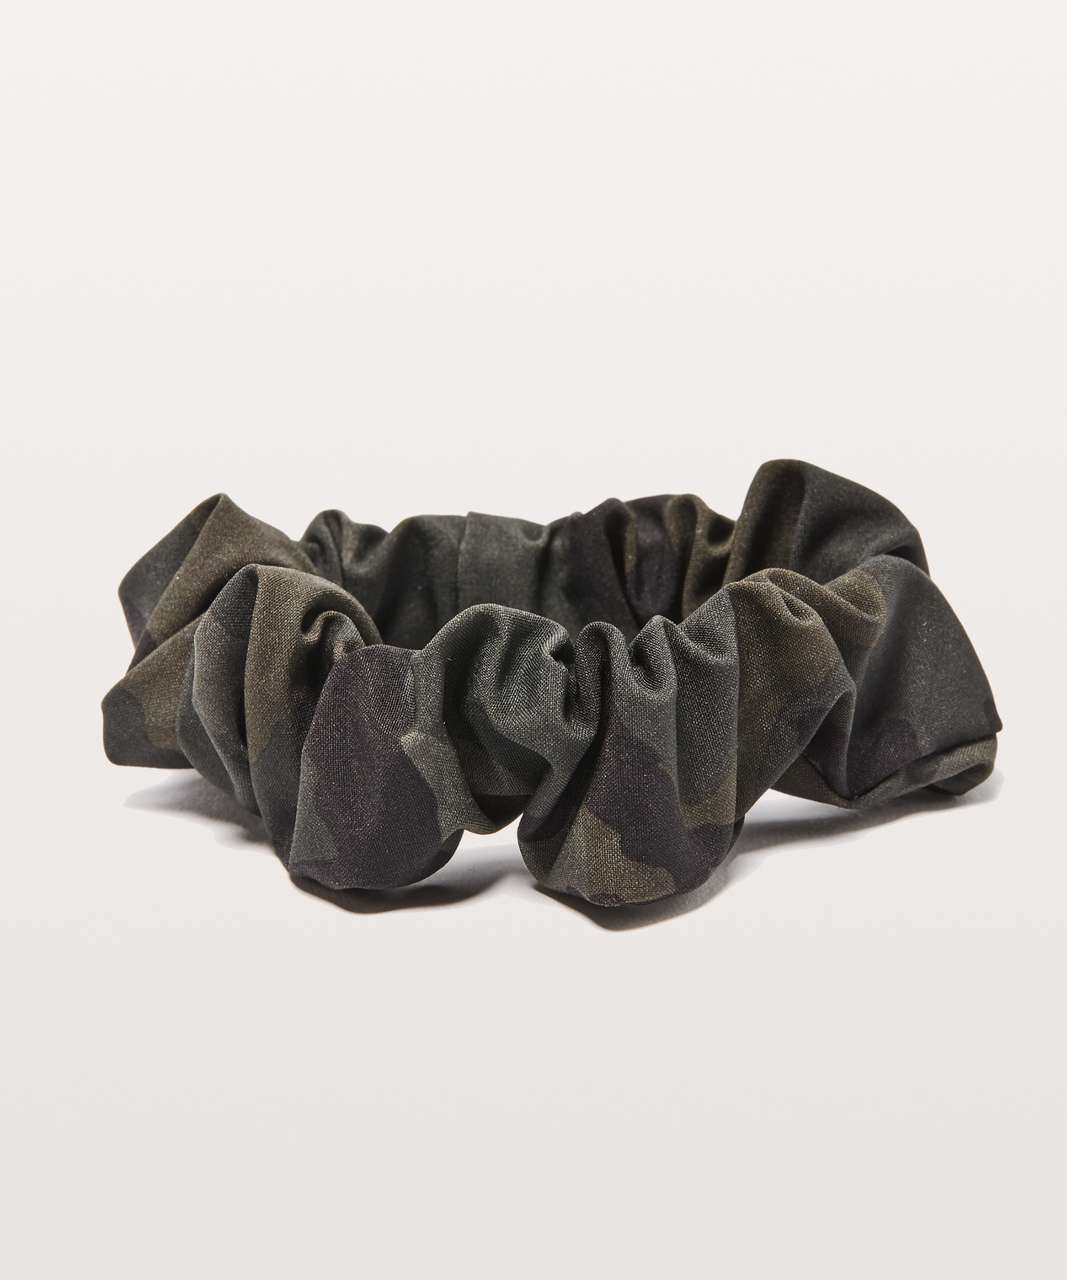 Lululemon Uplifting Scrunchie - Woodland Camo Gator Green Dark Olive